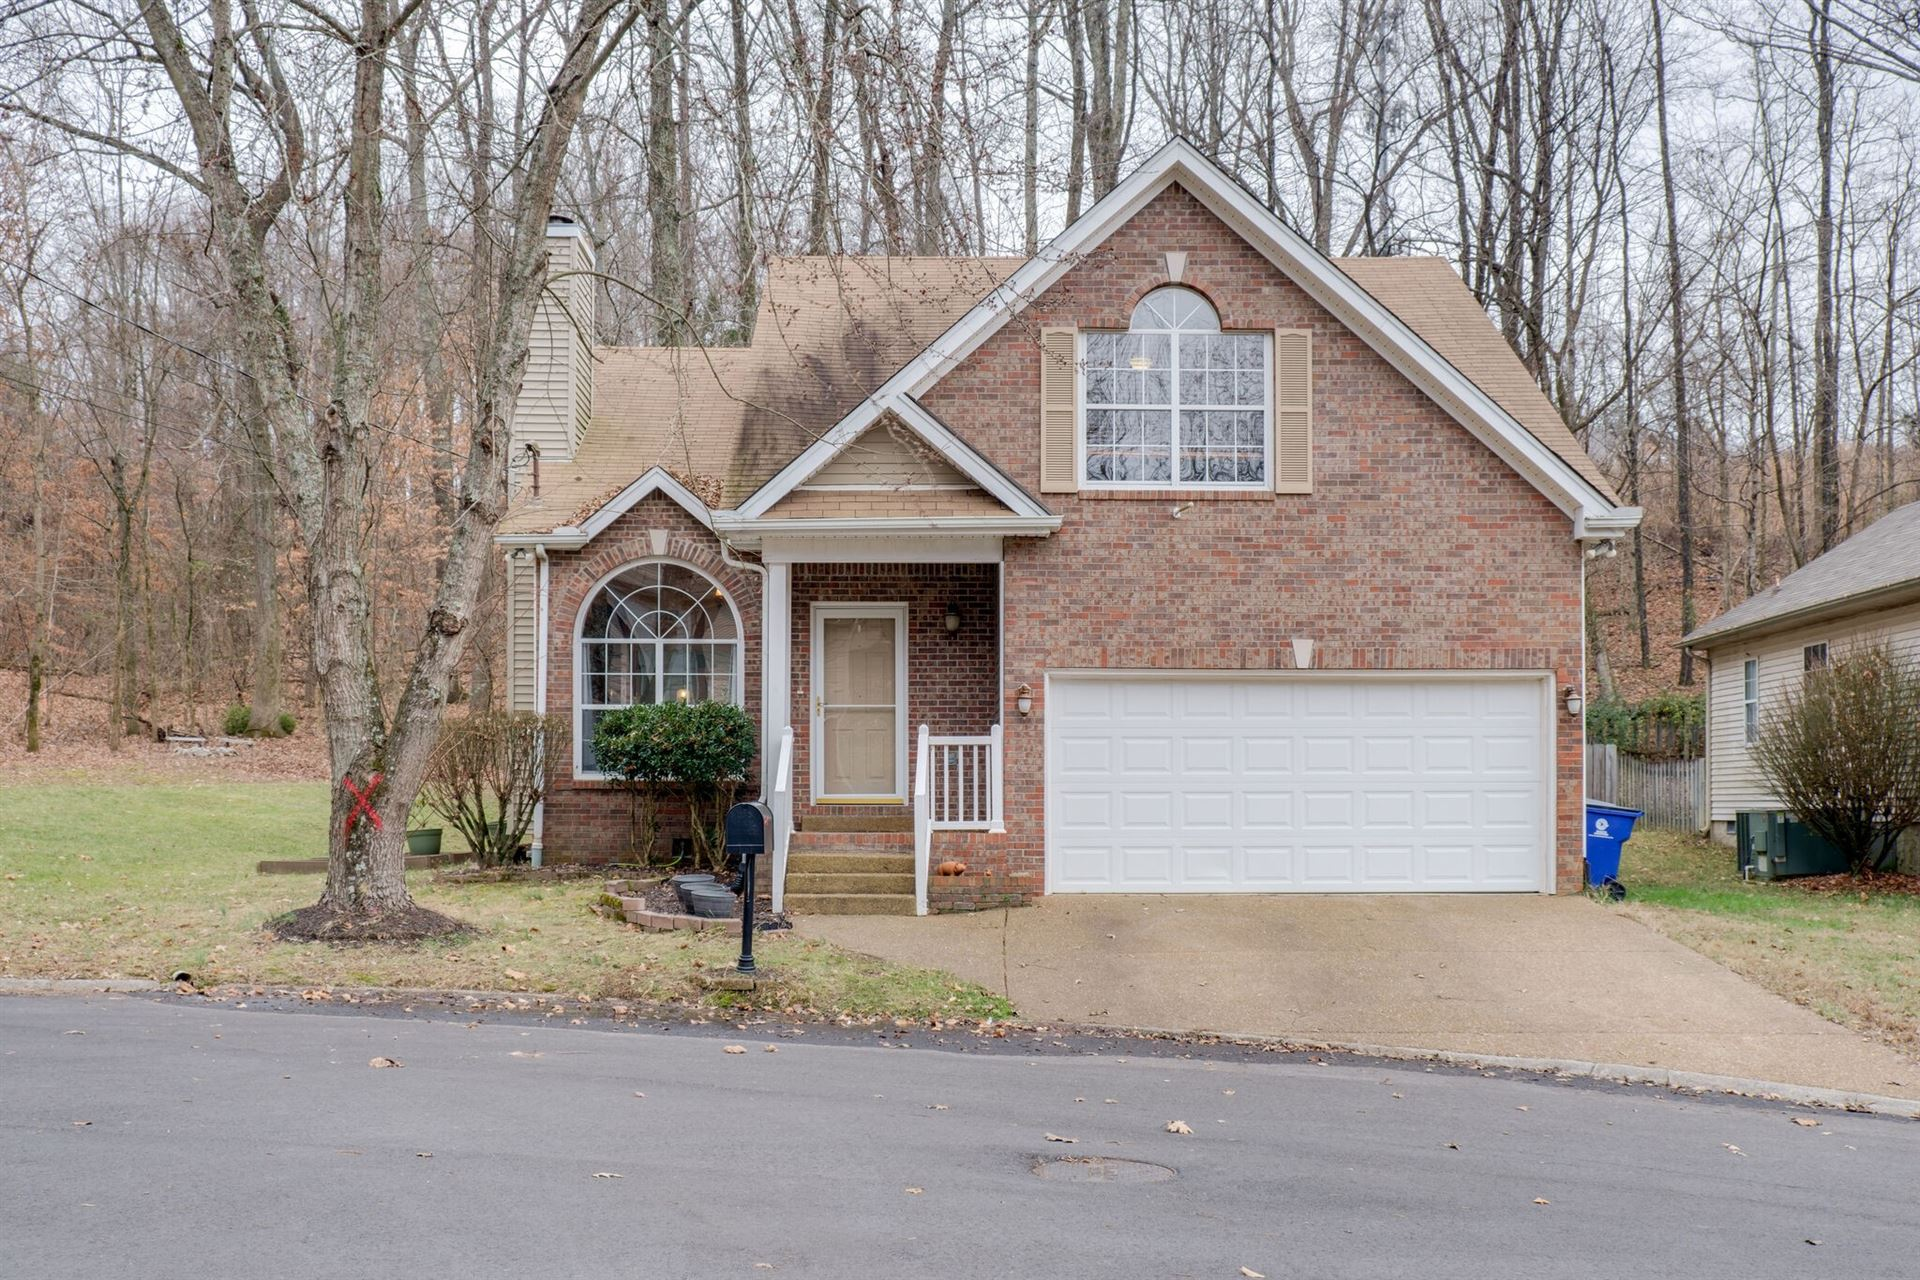 1340 Georgetown Dr, Old Hickory, TN 37138 - MLS#: 2219808